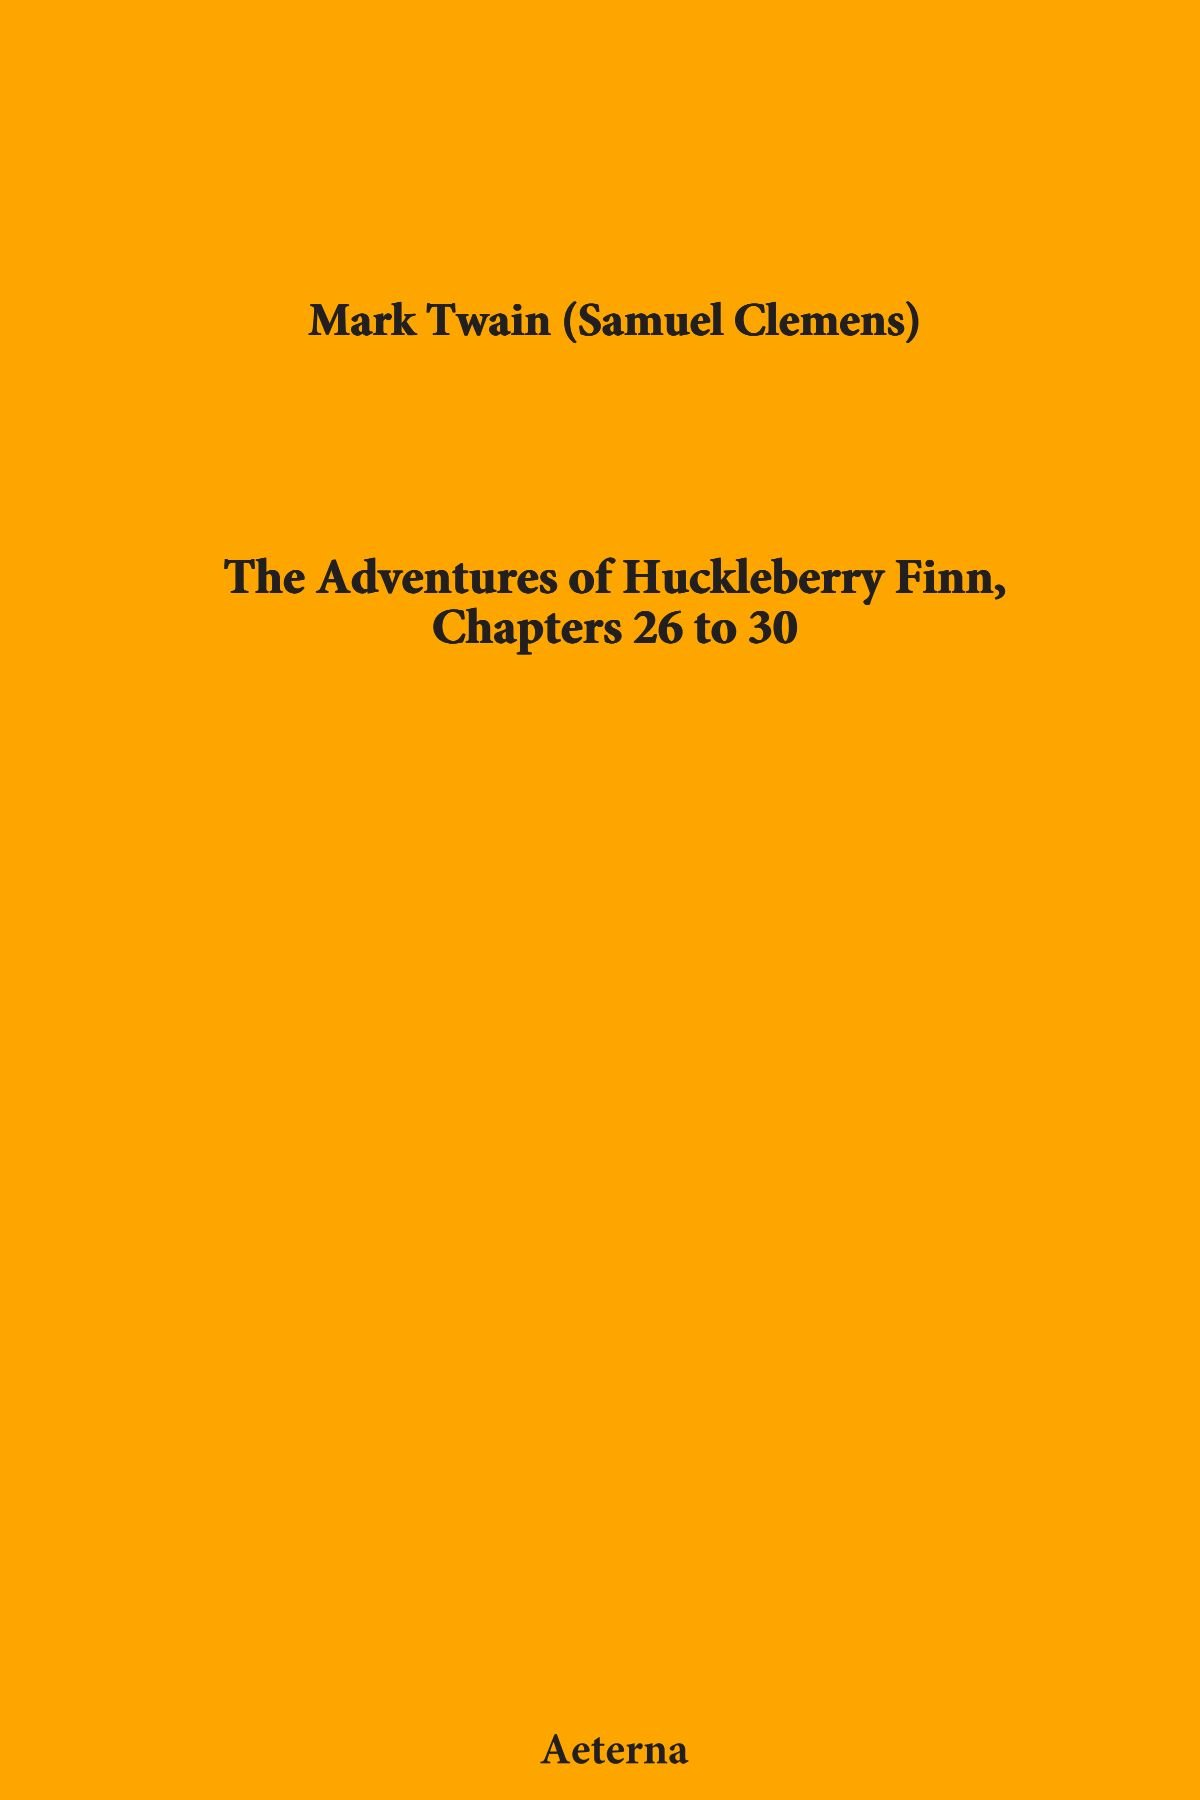 Download The Adventures of Huckleberry Finn, Chapters 26 to 30 pdf